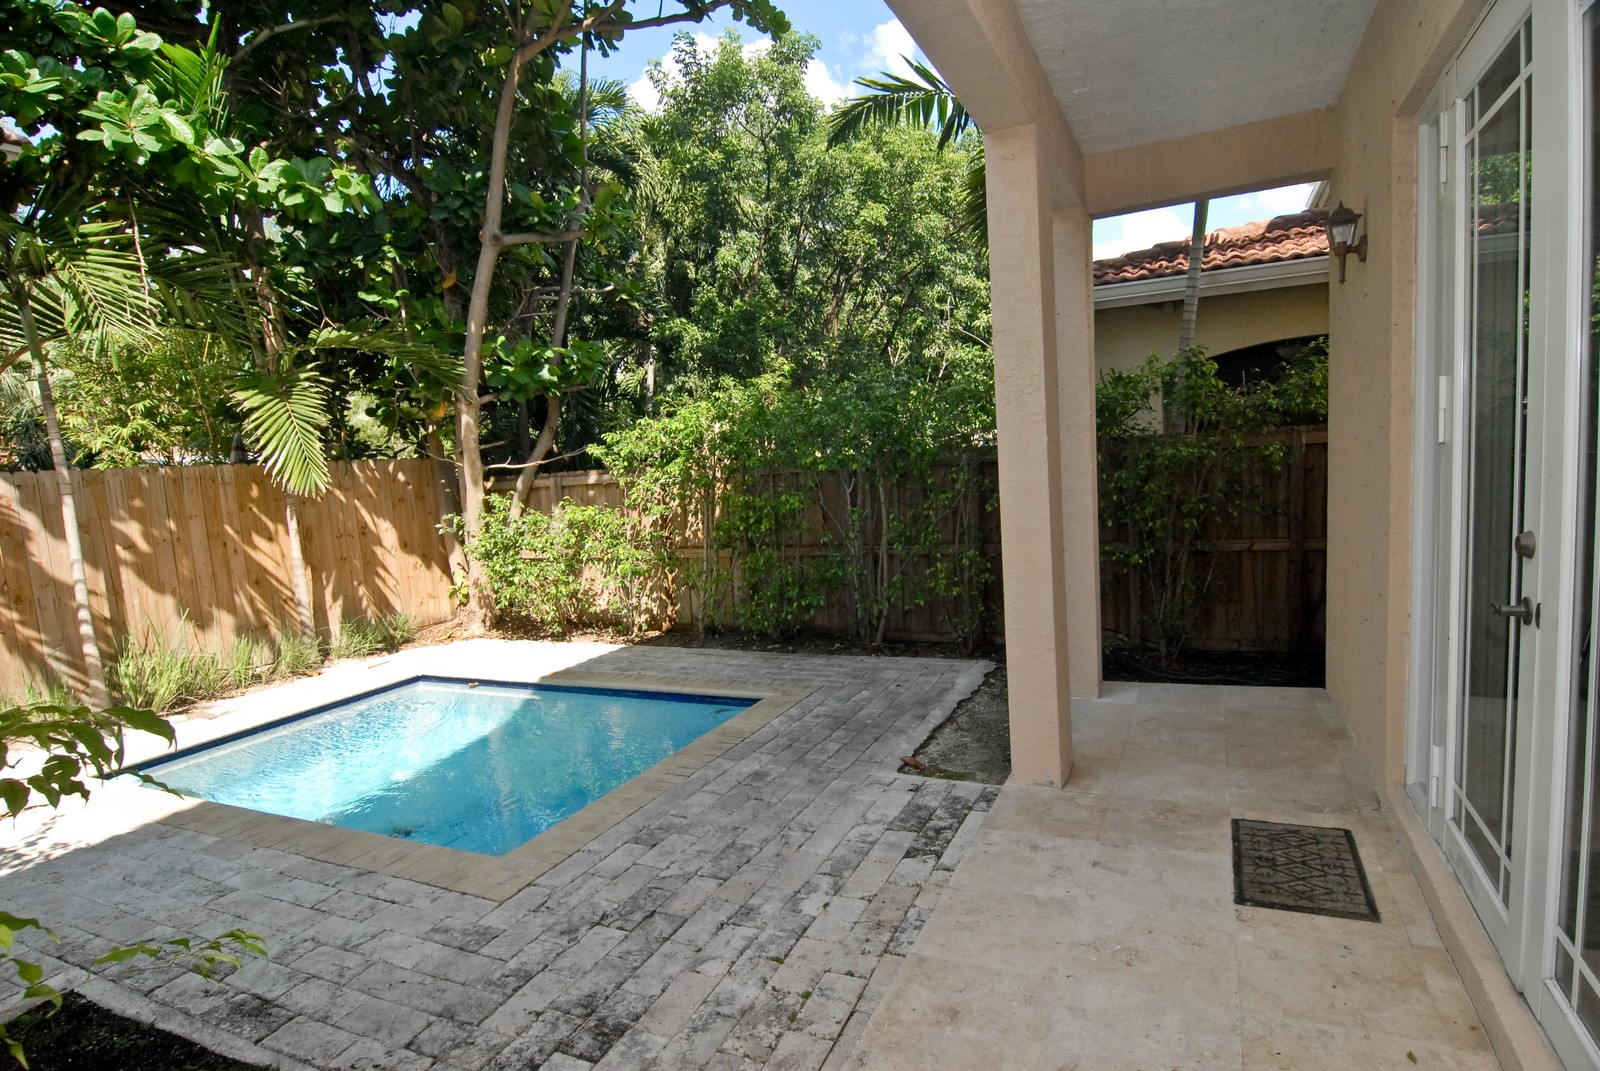 Real Estate Photography - 3034 Indiana St, Miami, FL, 33133 - Pool